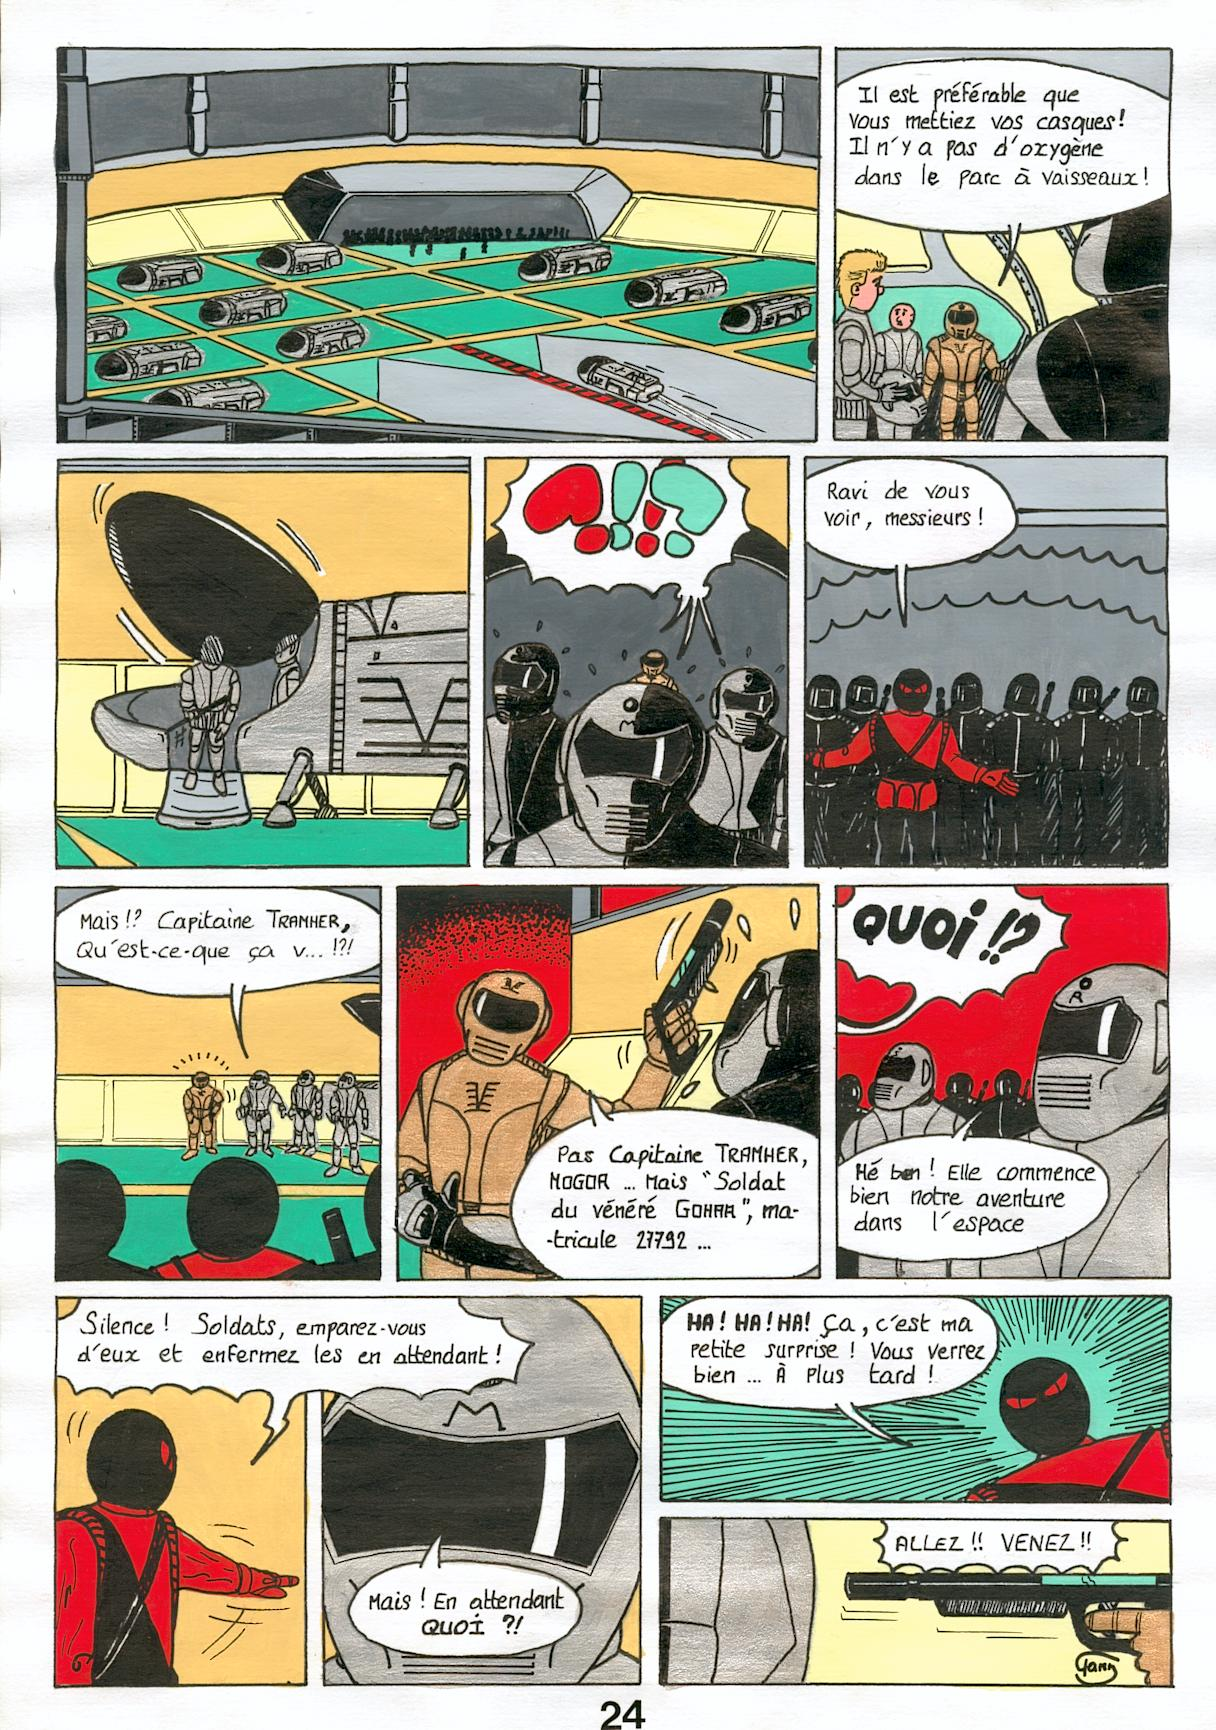 BD 8 page 24